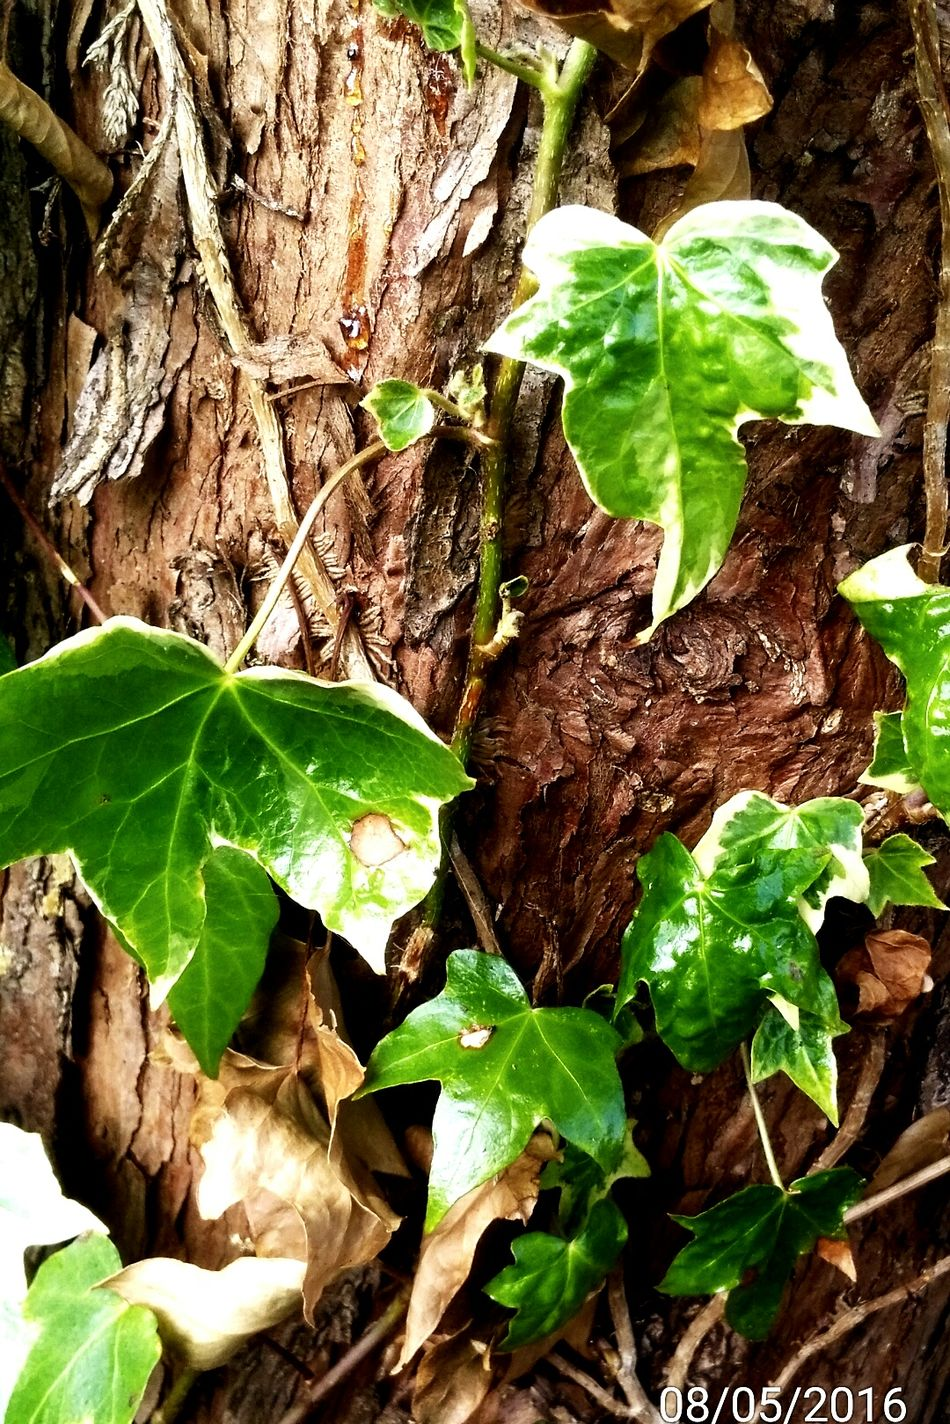 Tree Ivy Leaves Bark Ivy On Trunk Sap Patterns In Nature Great Outdoors - 2016 EyeEm Awards